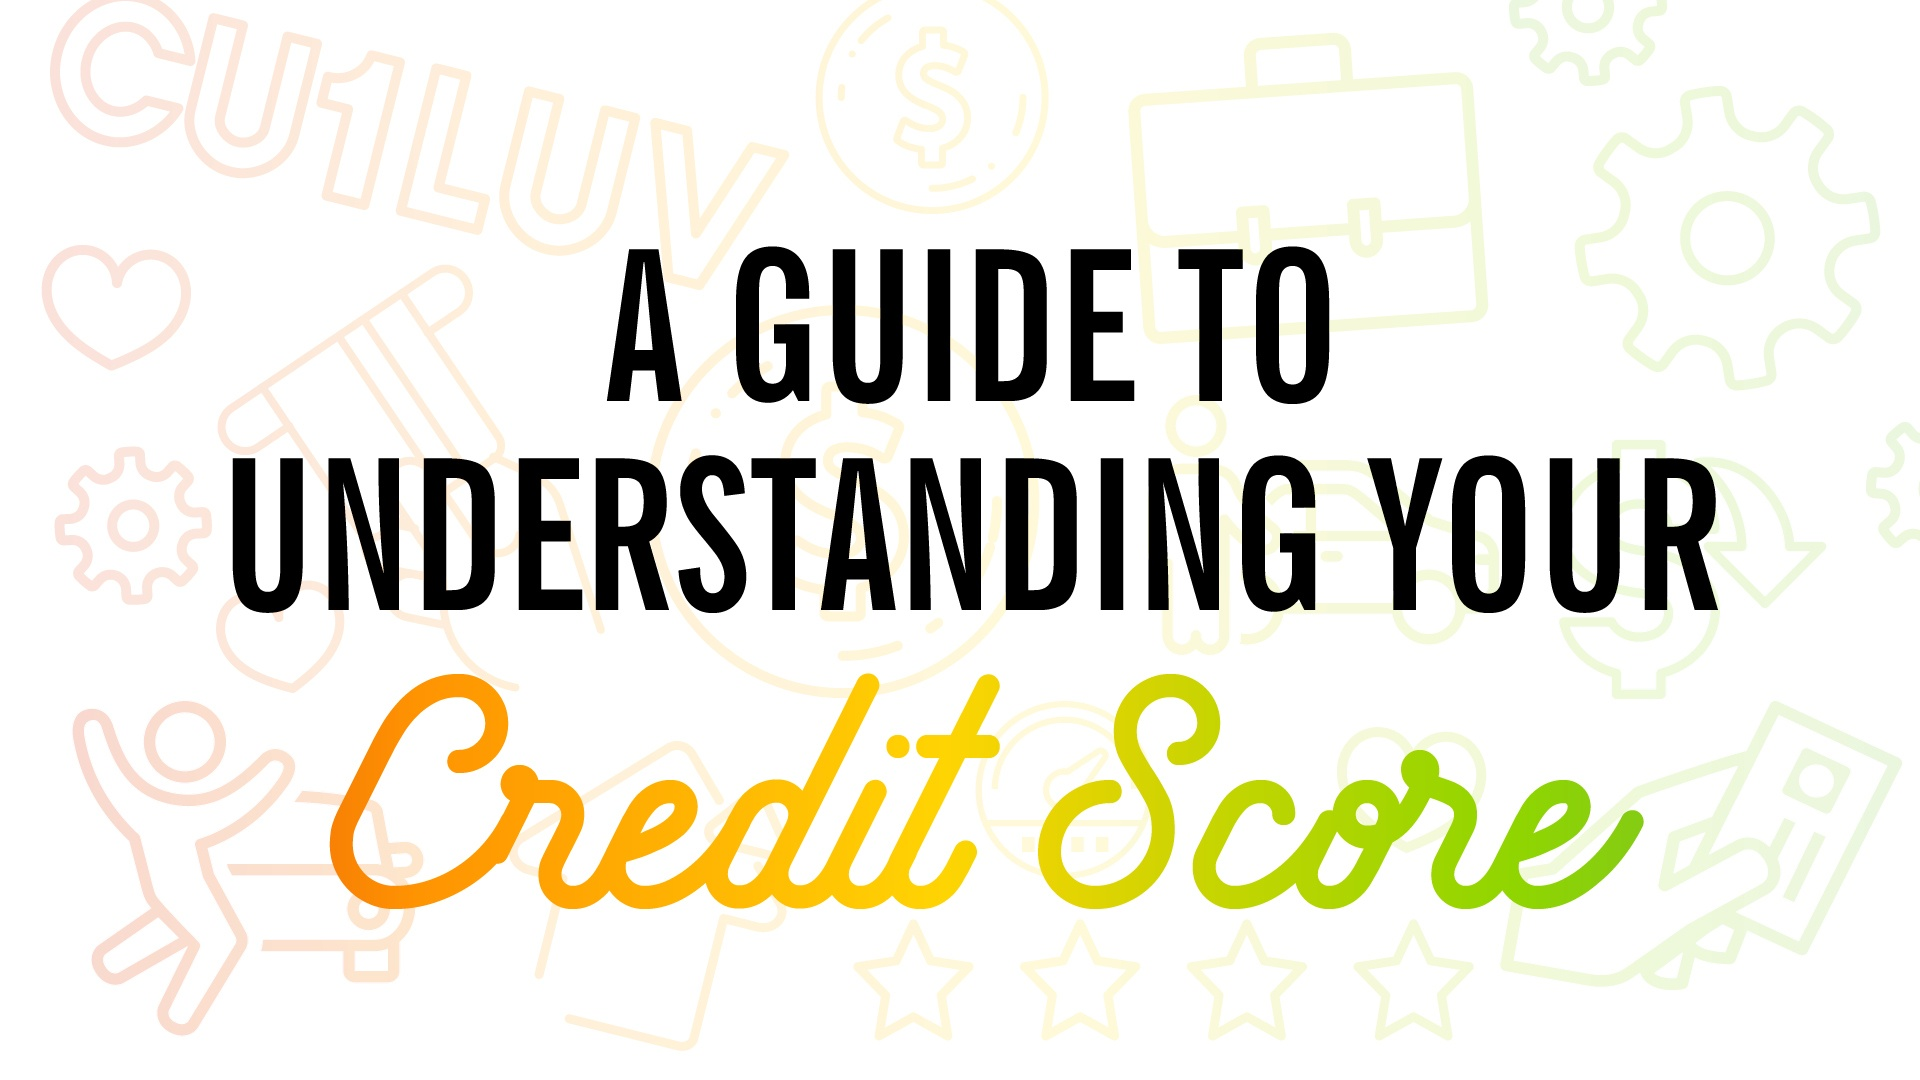 blog-savvymoney-a-guide-to-understanding-your-credit-score